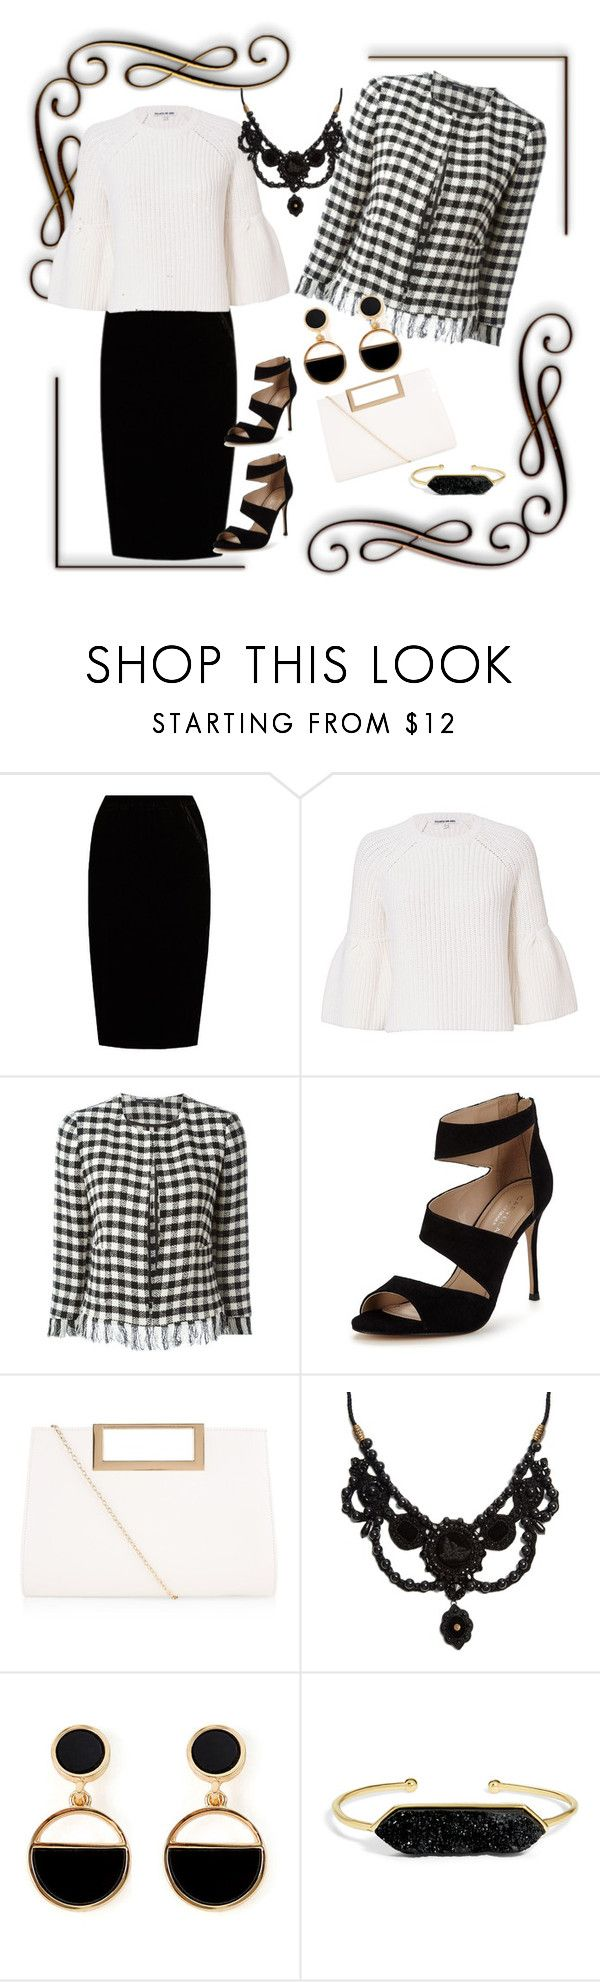 """Black And White"" by jeanstapley ❤ liked on Polyvore featuring Jupe By Jackie, Elizabeth and James, Tagliatore, Carvela, New Look, Gucci, Warehouse and BaubleBar"